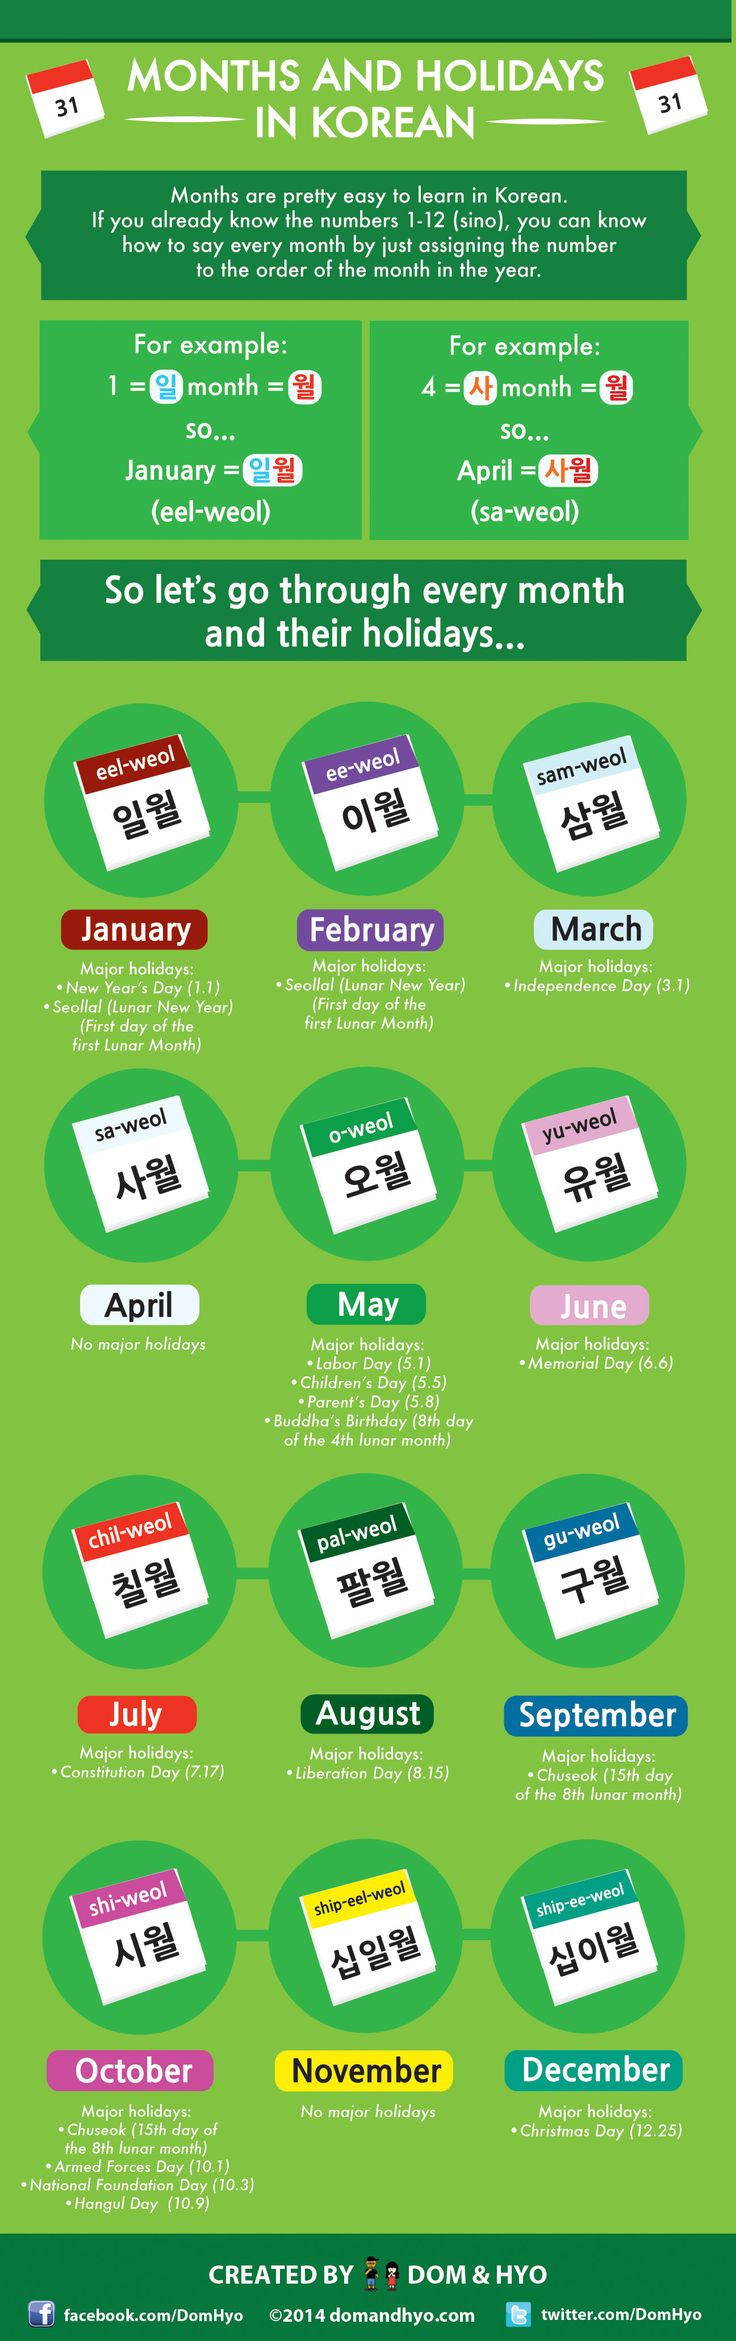 Know Your Korean Months & Holidays with this Simple Infographic